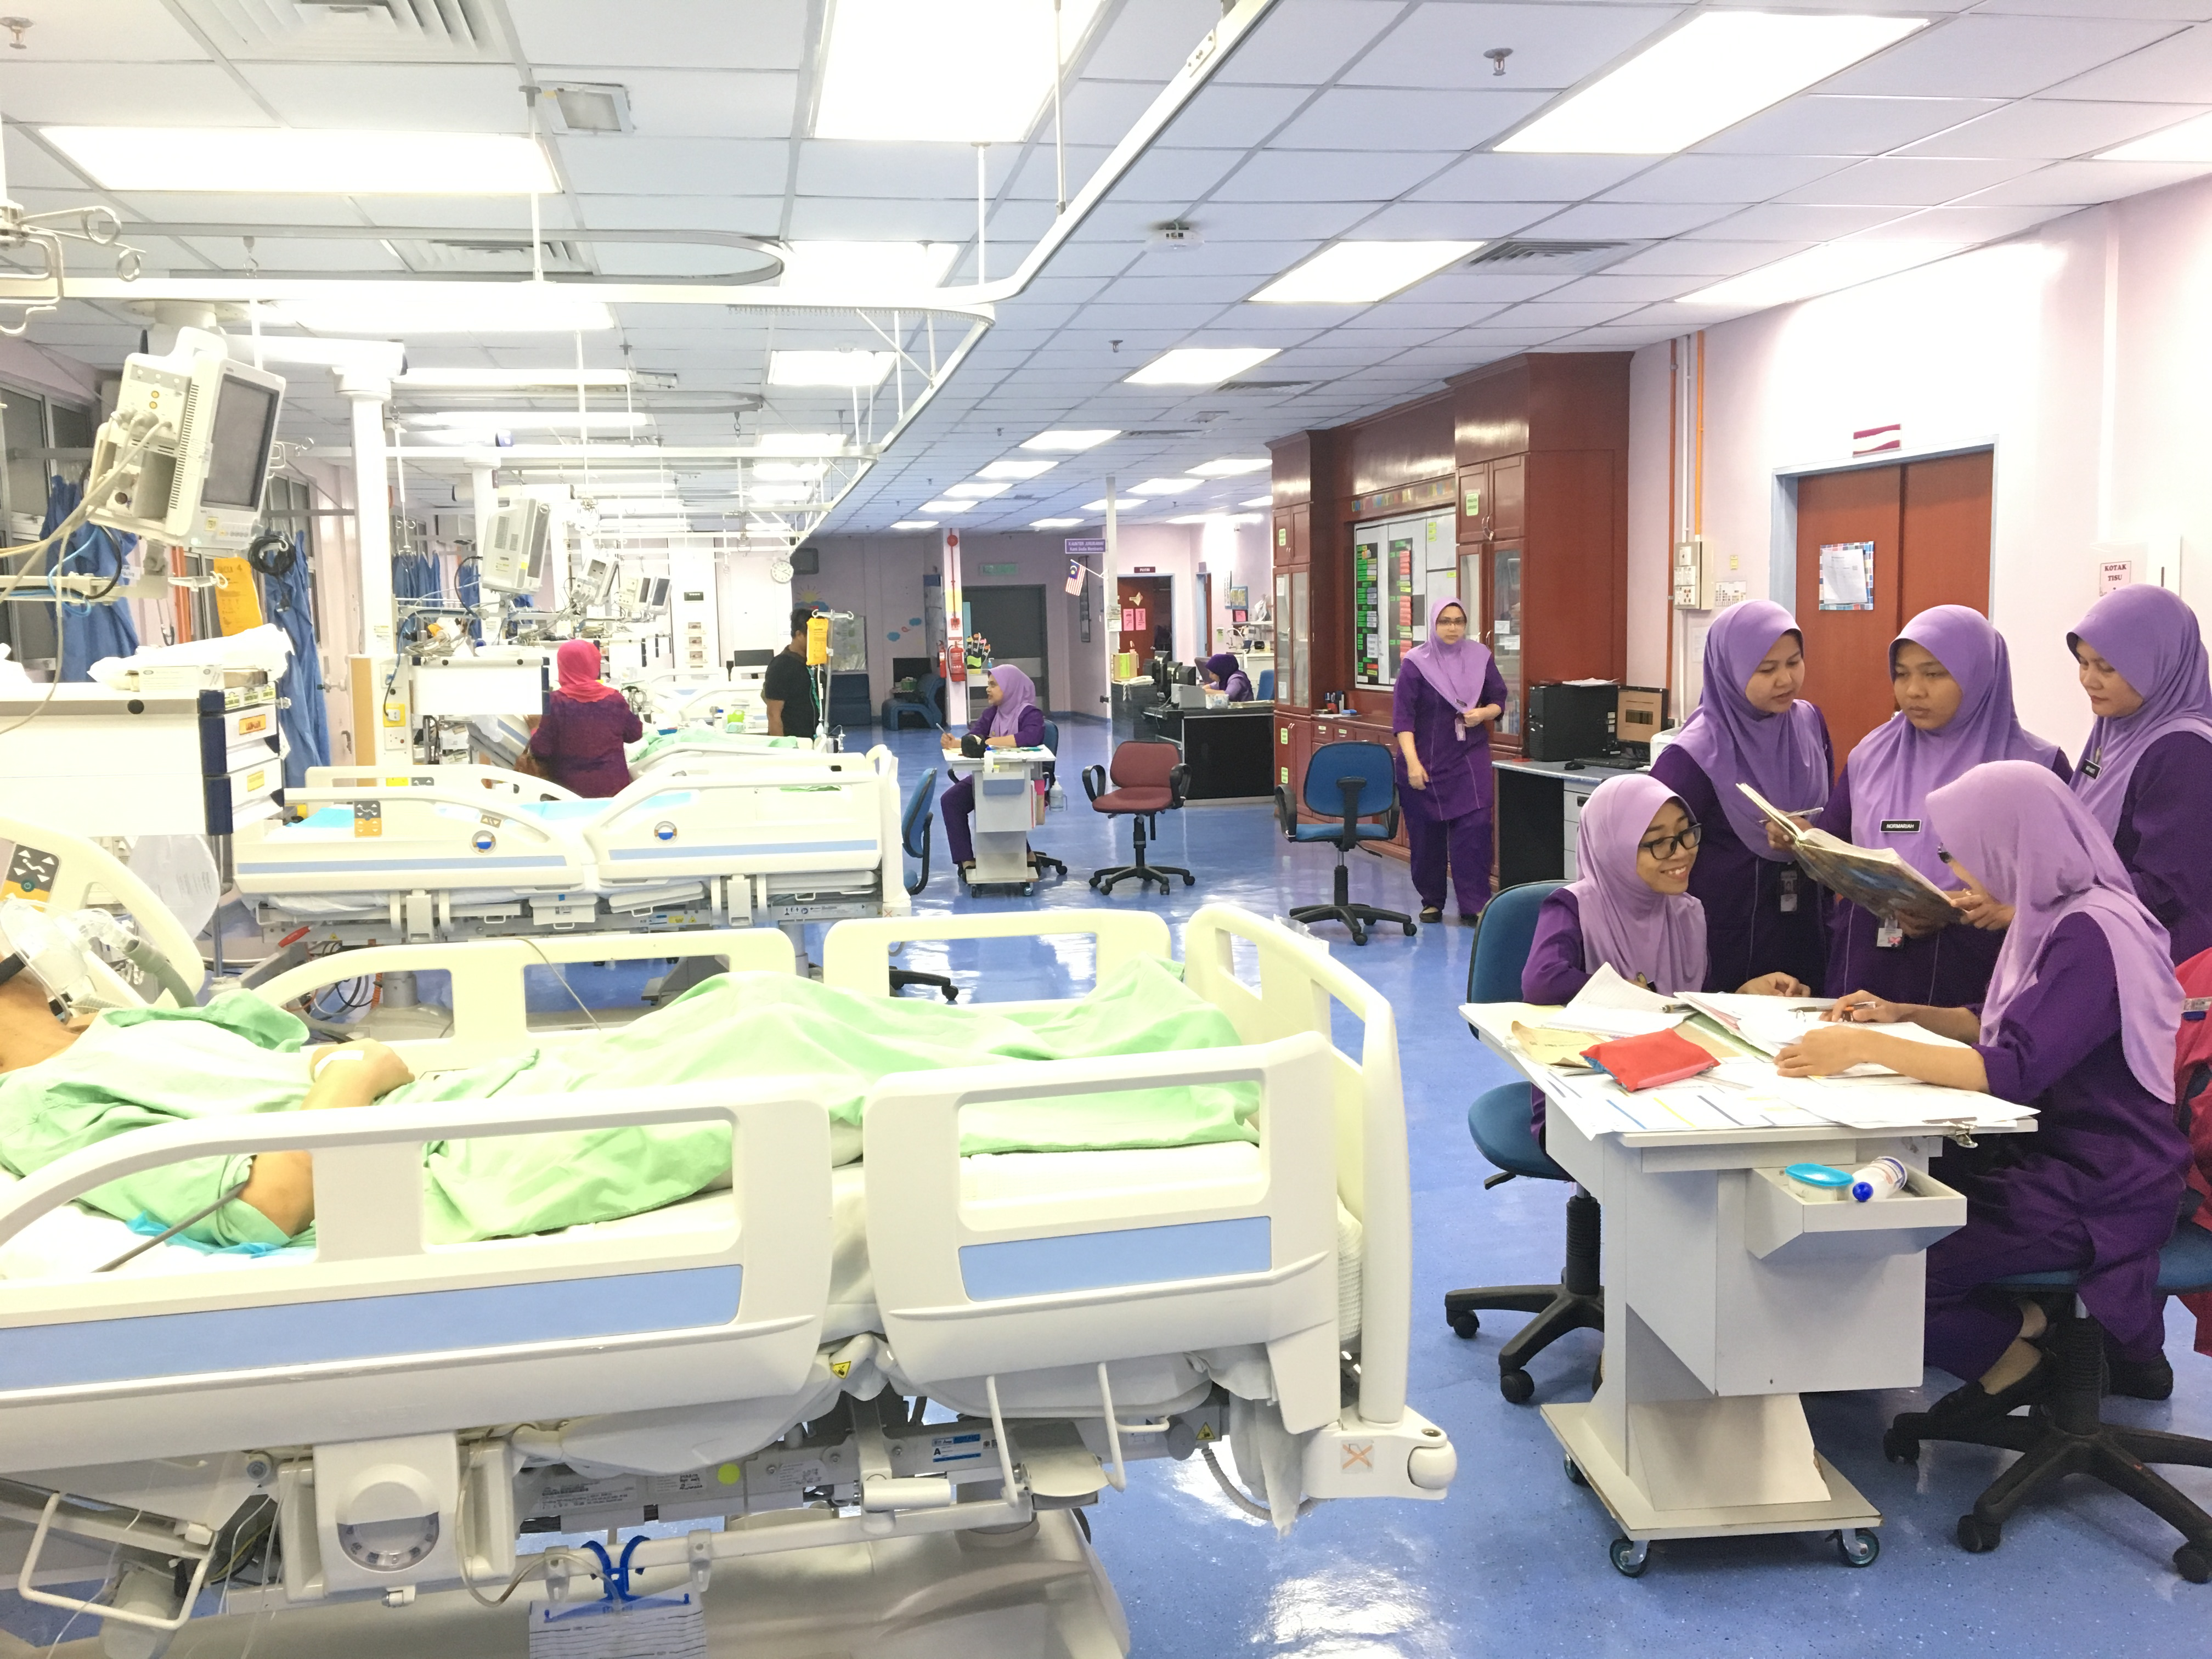 Surgical Intensive Care Unit